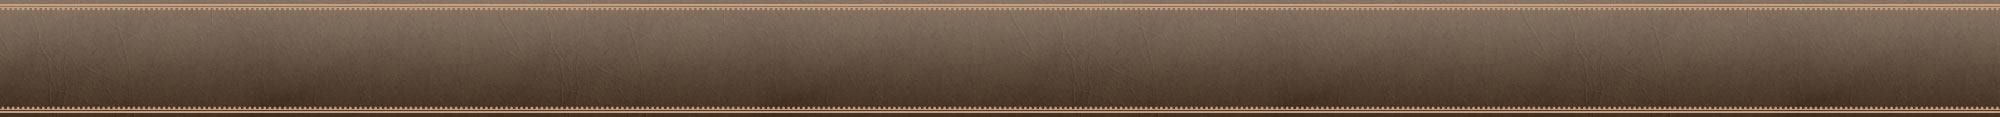 Brown Header Border